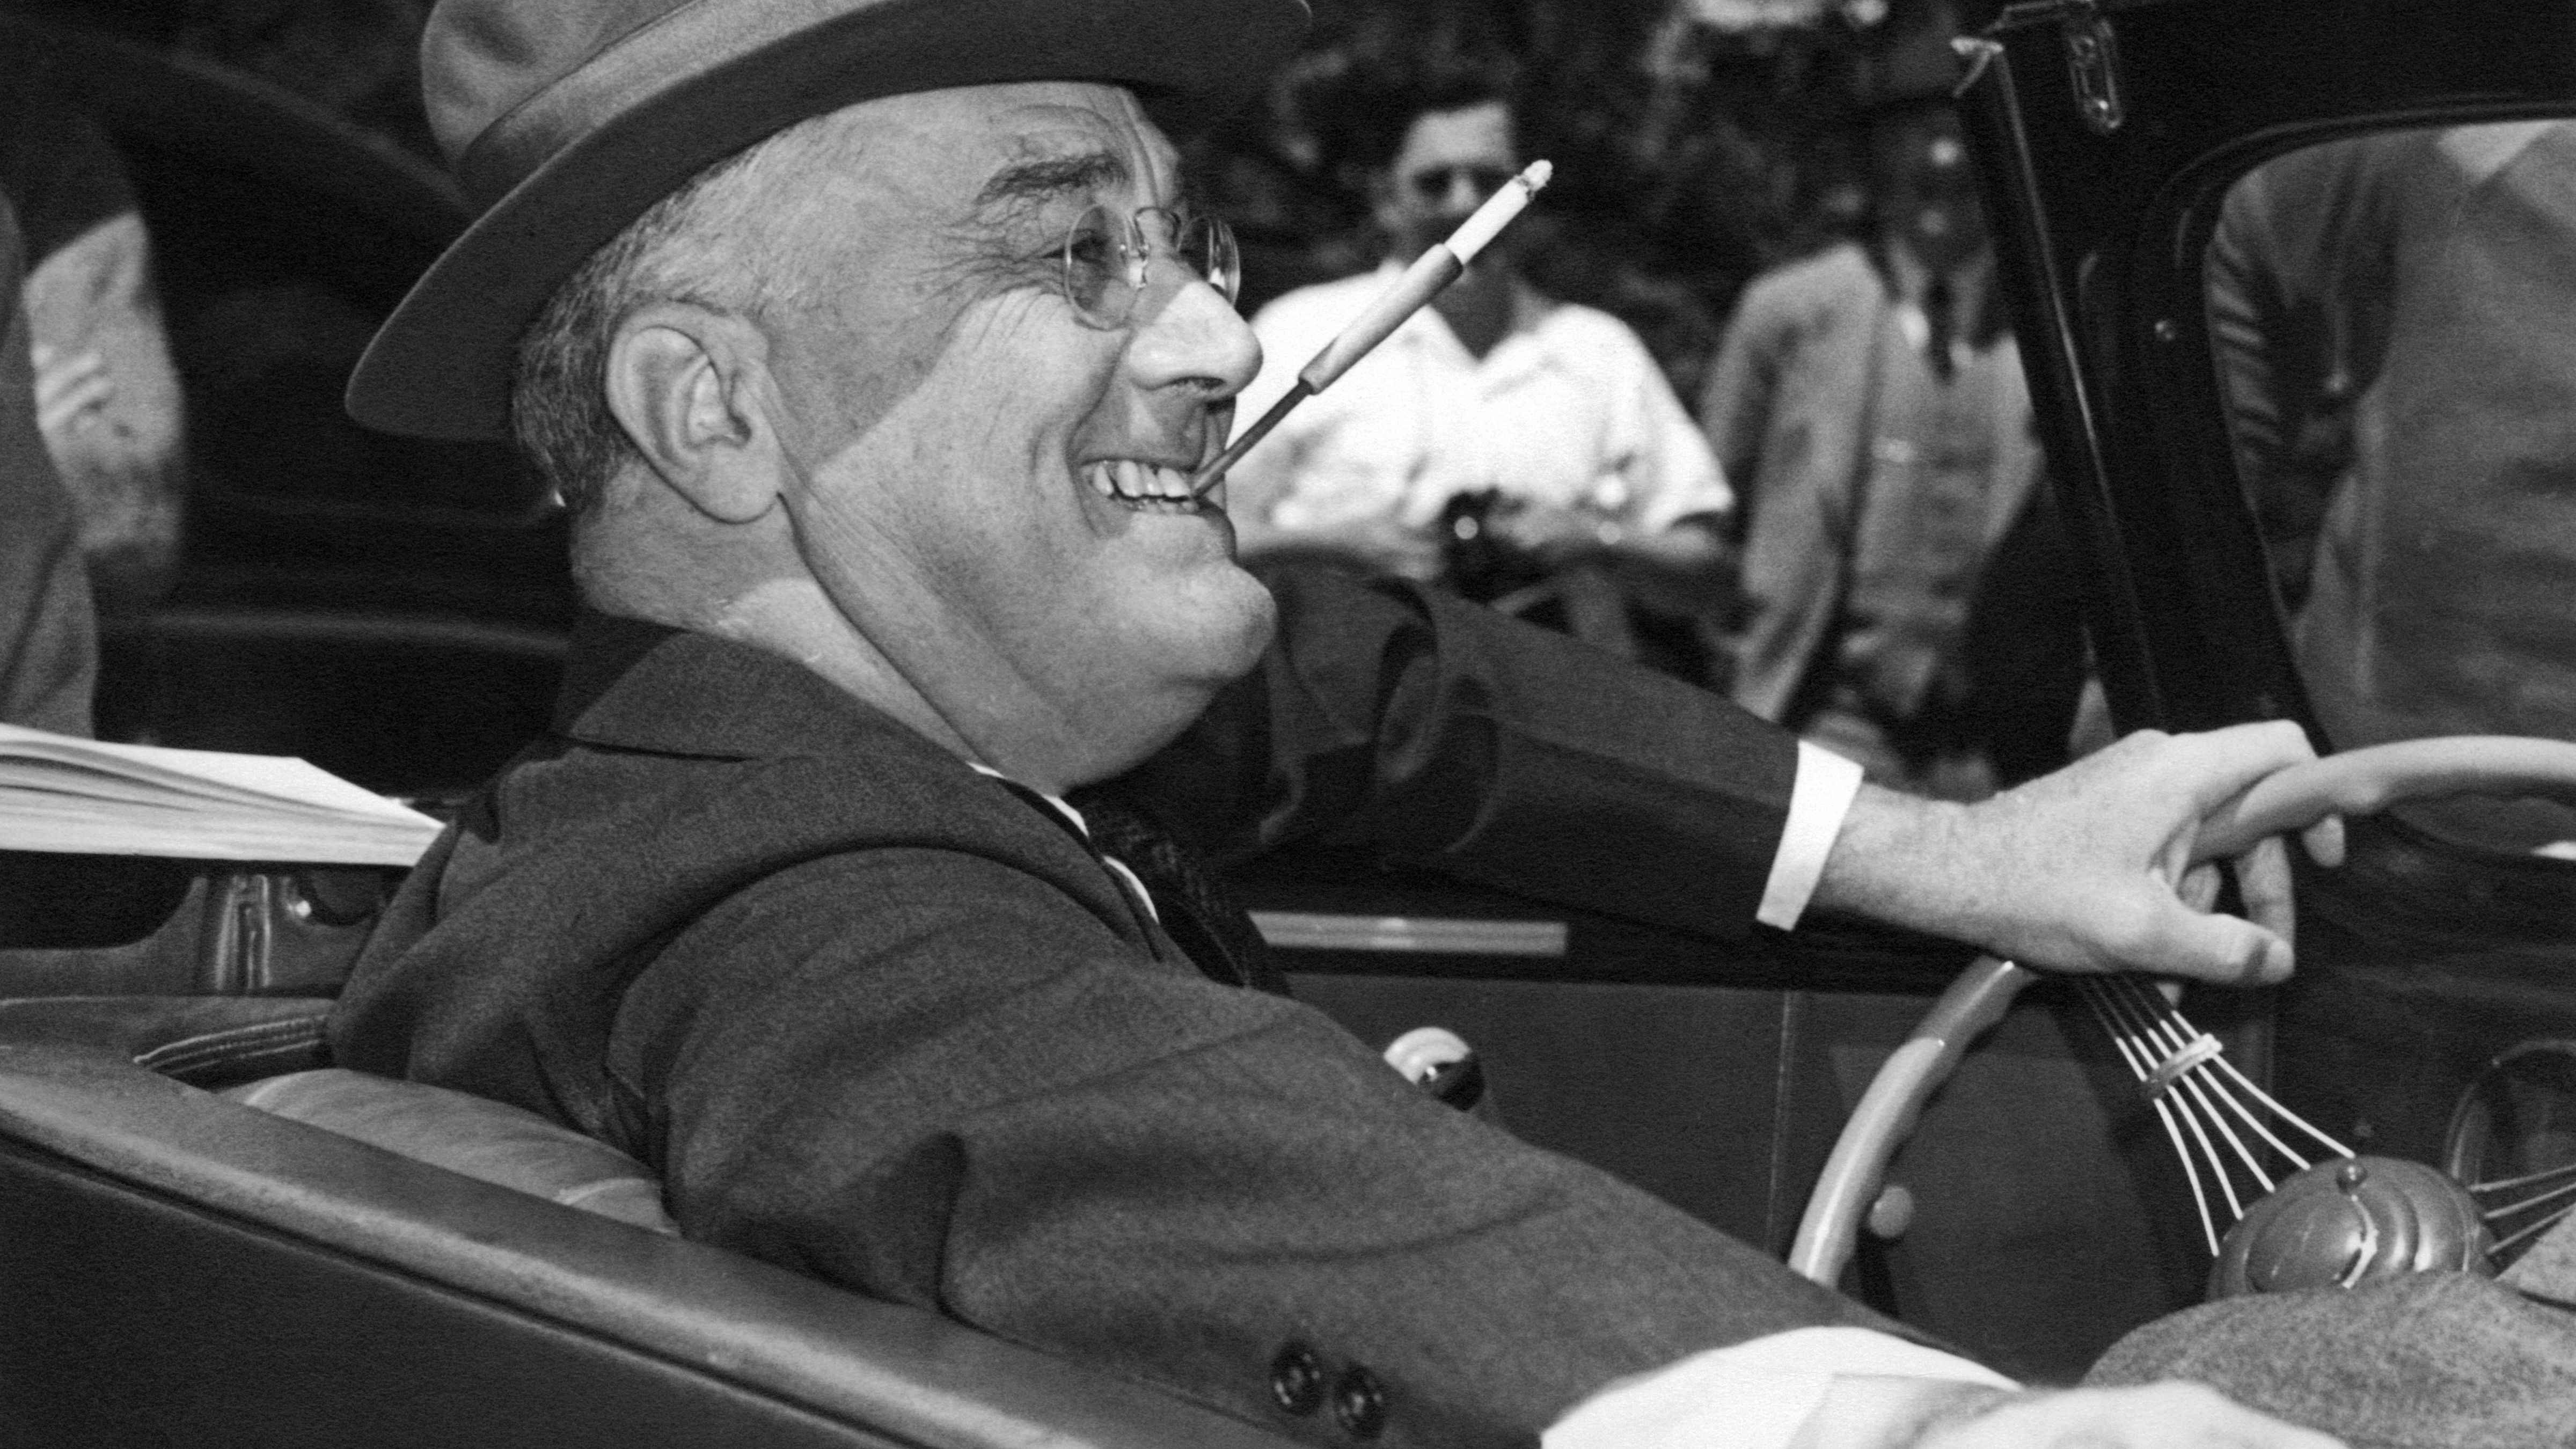 Franklin D. Roosevelt's Economic Policies and Accomplishments